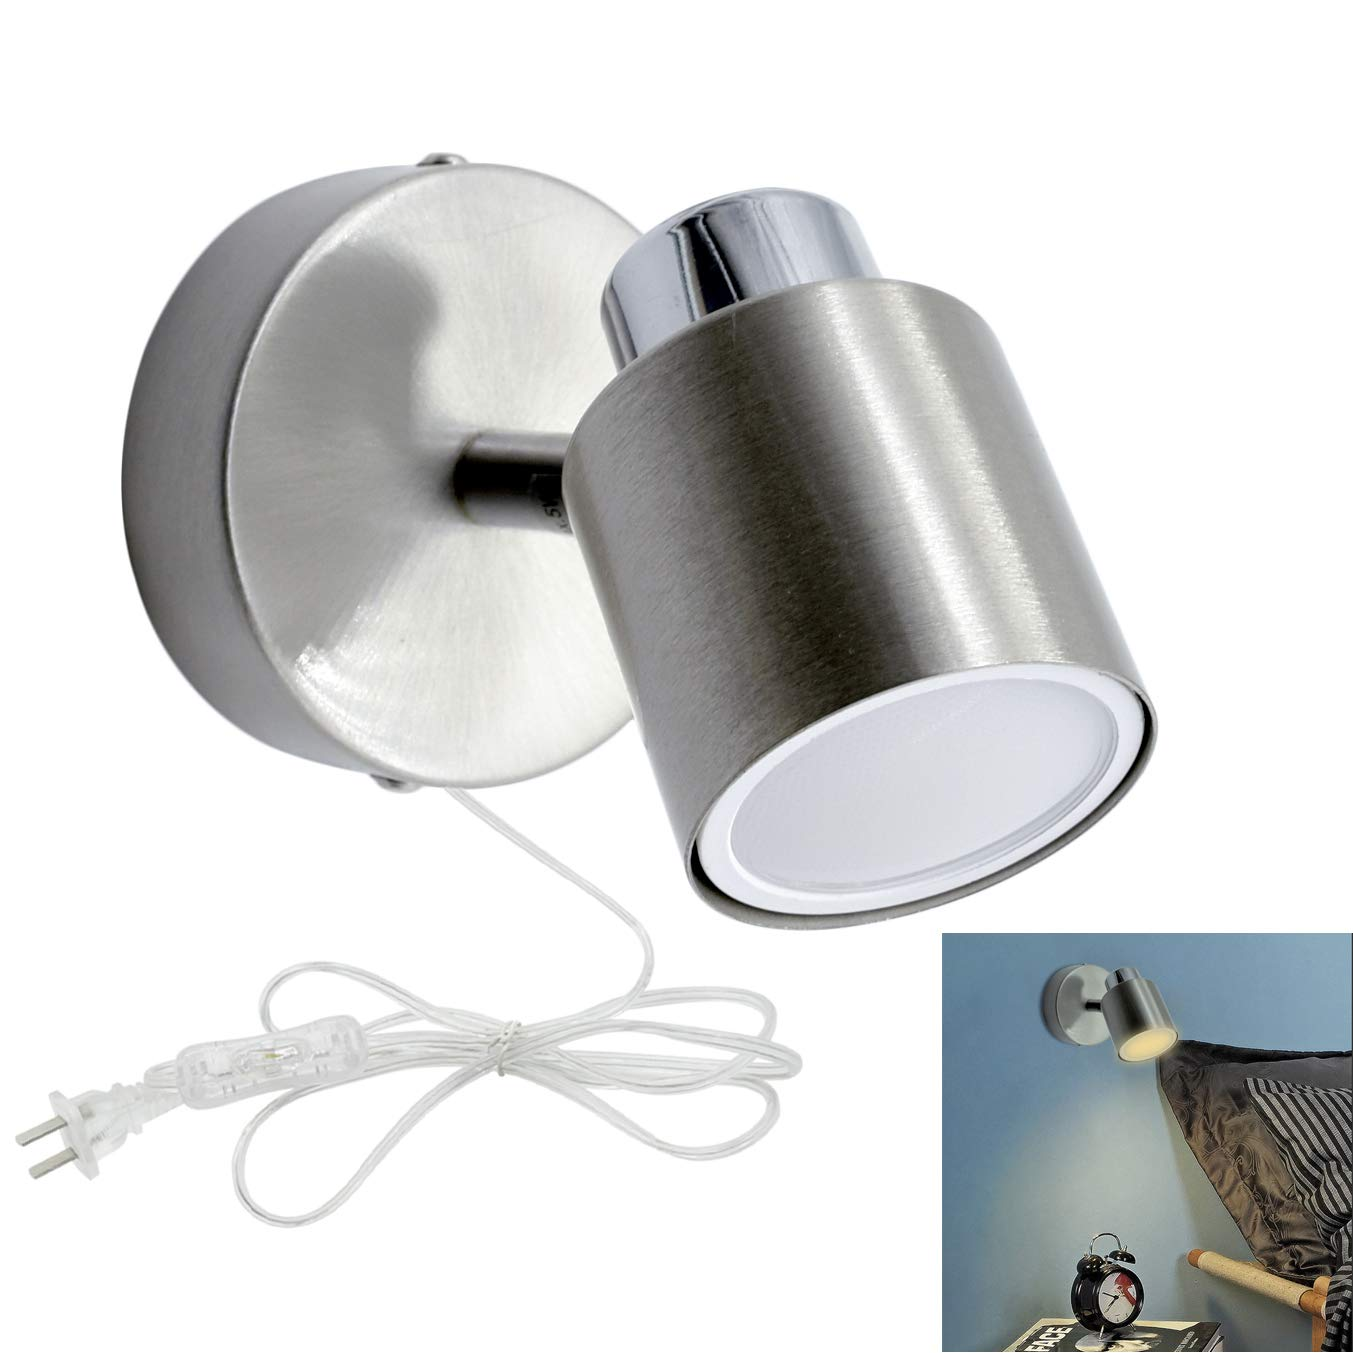 W-LITE Indoor LED Wall Spotlight Adjustable Spot Light-5W Multi-Purpose Wall Lamp Classical Surface Mounted Downlight GU10 Bulb with US Plug for Bedside Headboard Picture, Polished Chrome, Warm White